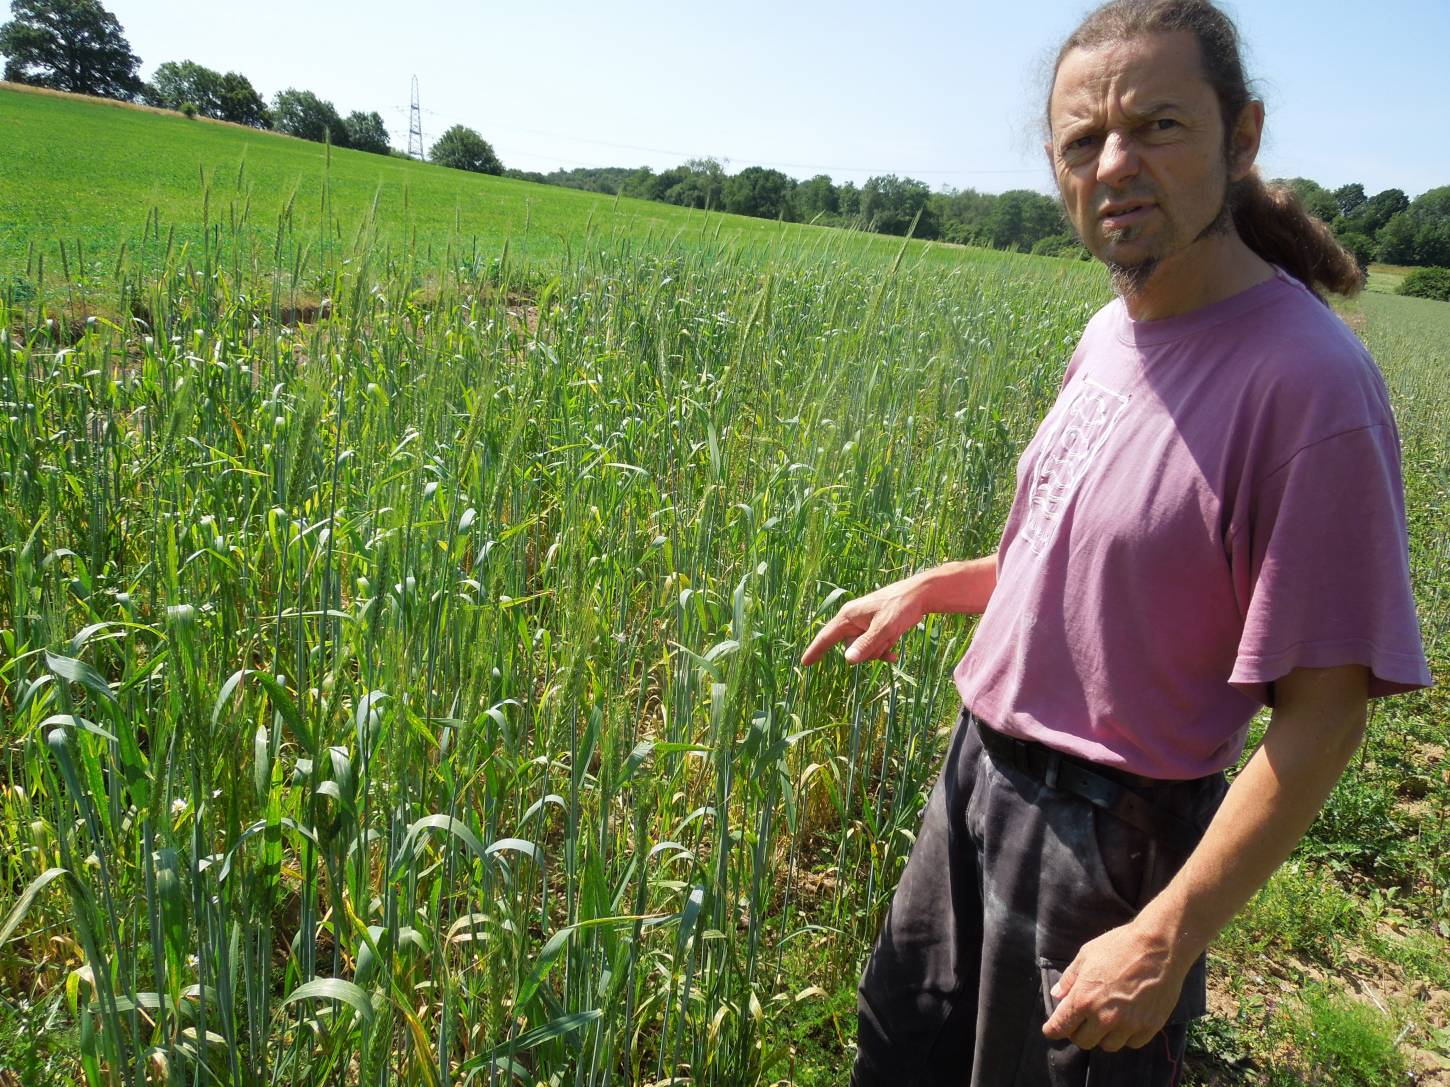 Forest Row baker Jean Marc Albisetti touring WoWo heritage wheat - April Bearded pretty patchy after early rook attack - 11:25am&nbsp;3<sup>rd</sup>&nbsp;Jul.&nbsp;'15